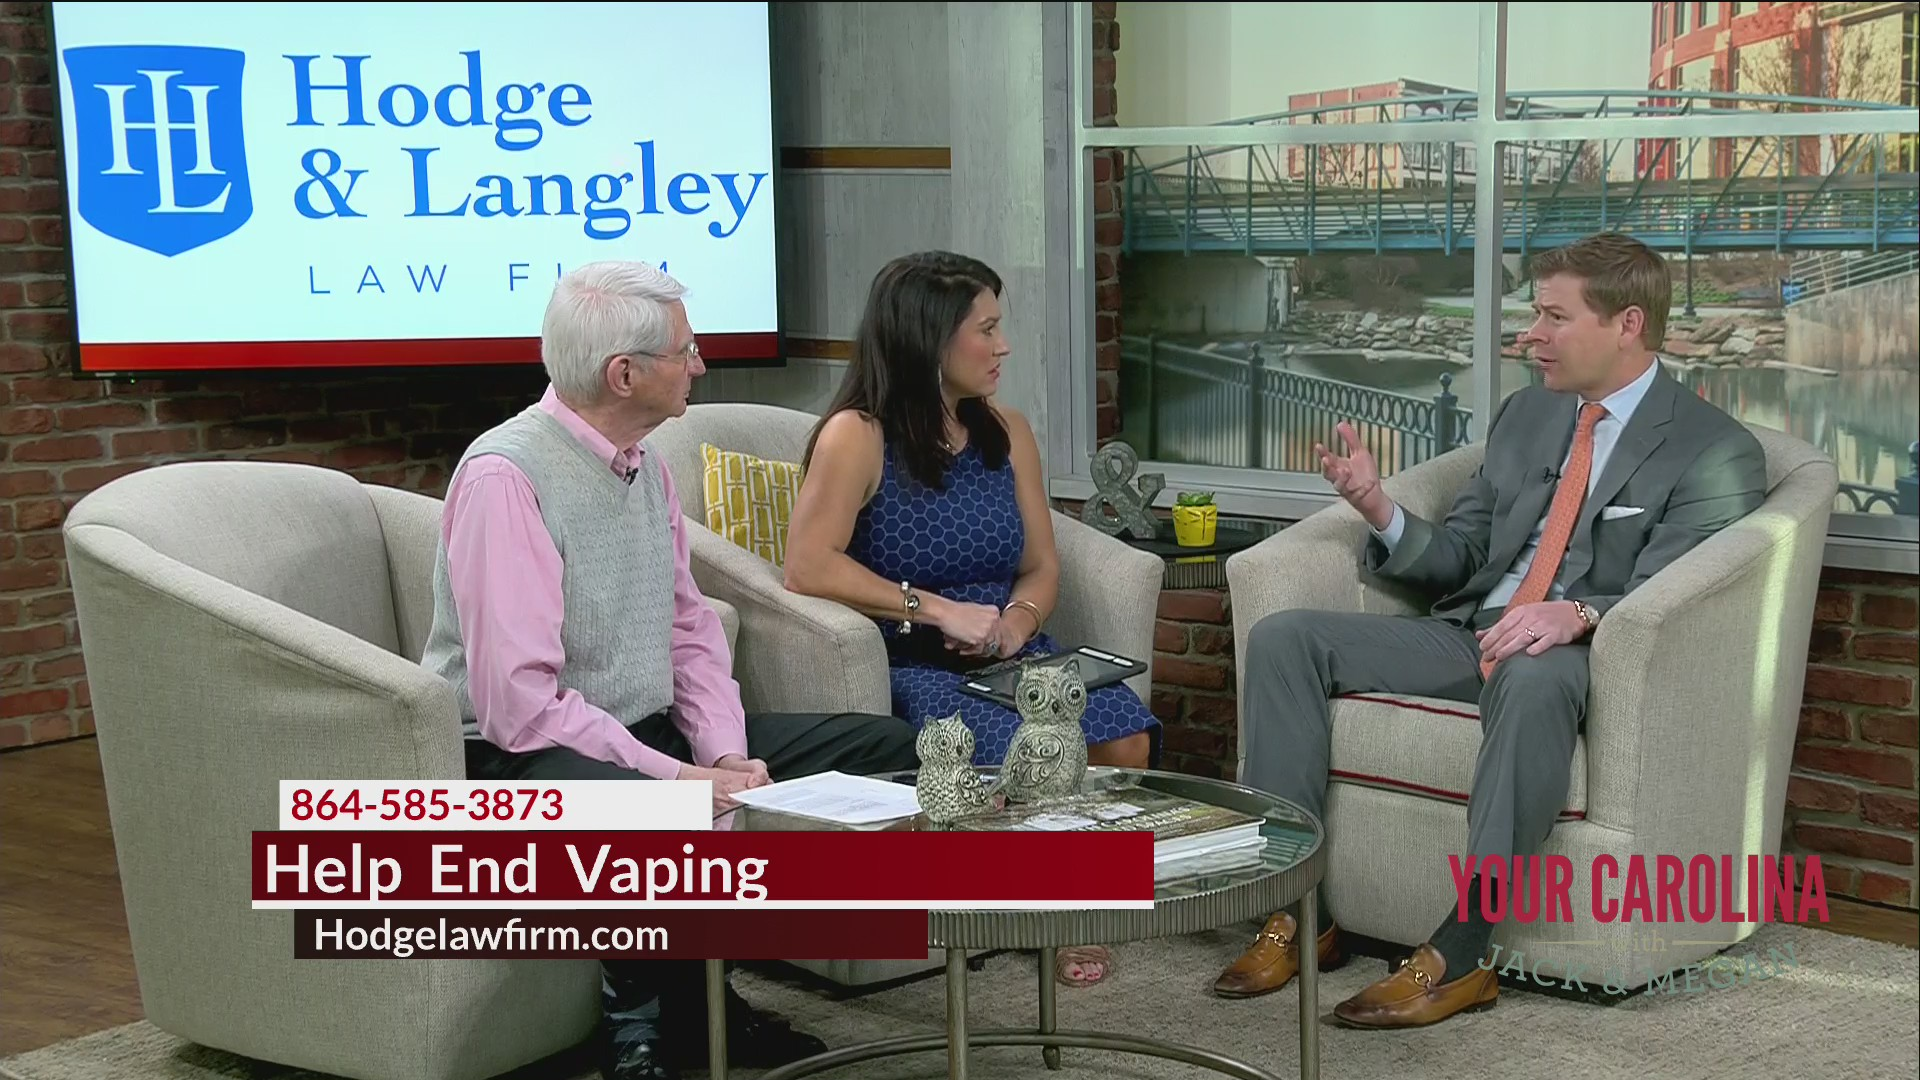 Hodge and Langley - Help End Vaping